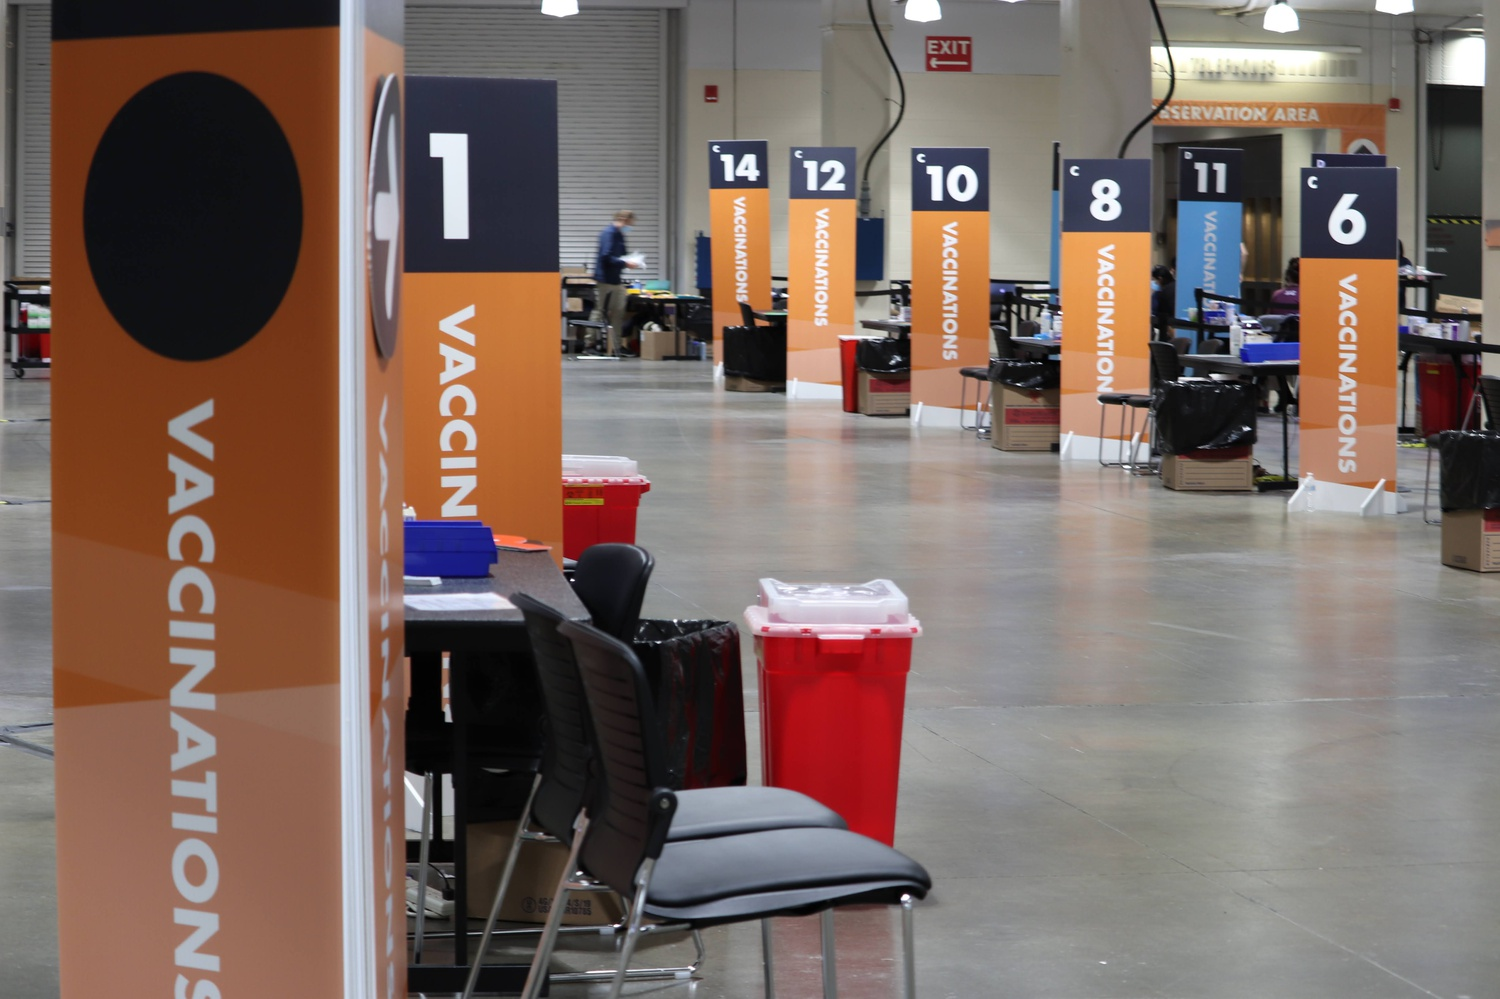 The state-run vaccination site at Hynes Convention Center in Boston can administer up to 7,000 shots per day.